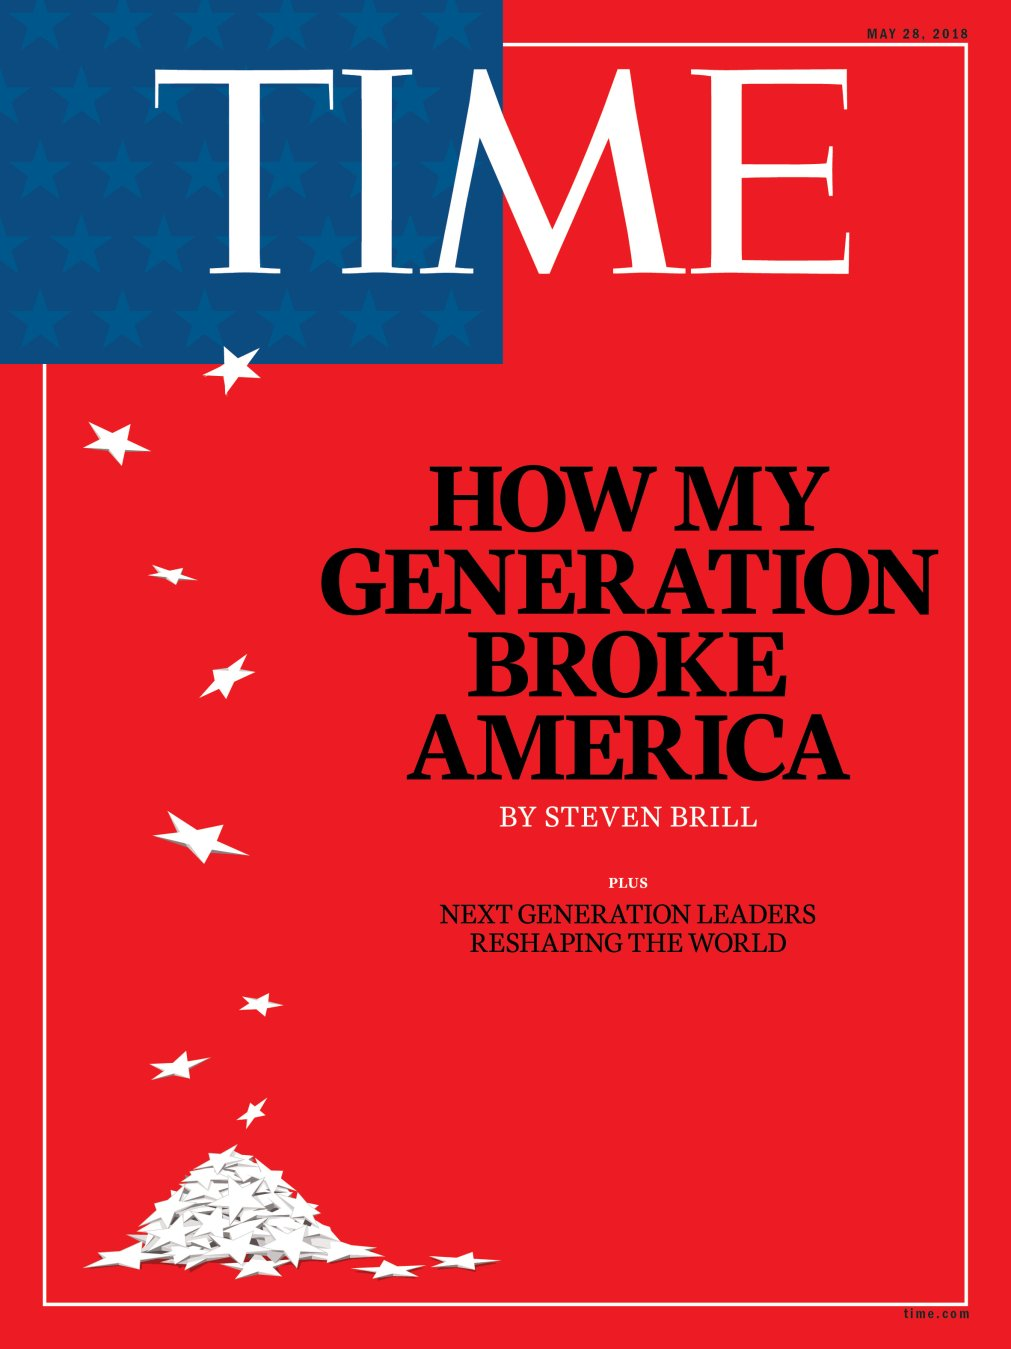 How Baby Boomers Broke America | TIME